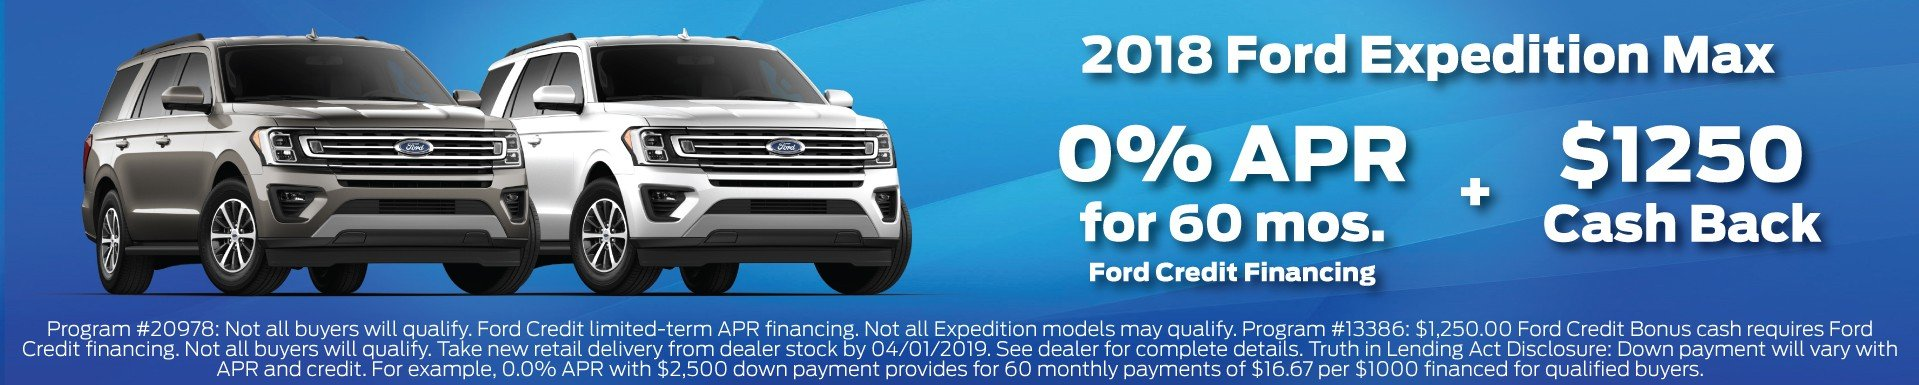 2018 Ford Expedition Offer 3-2019